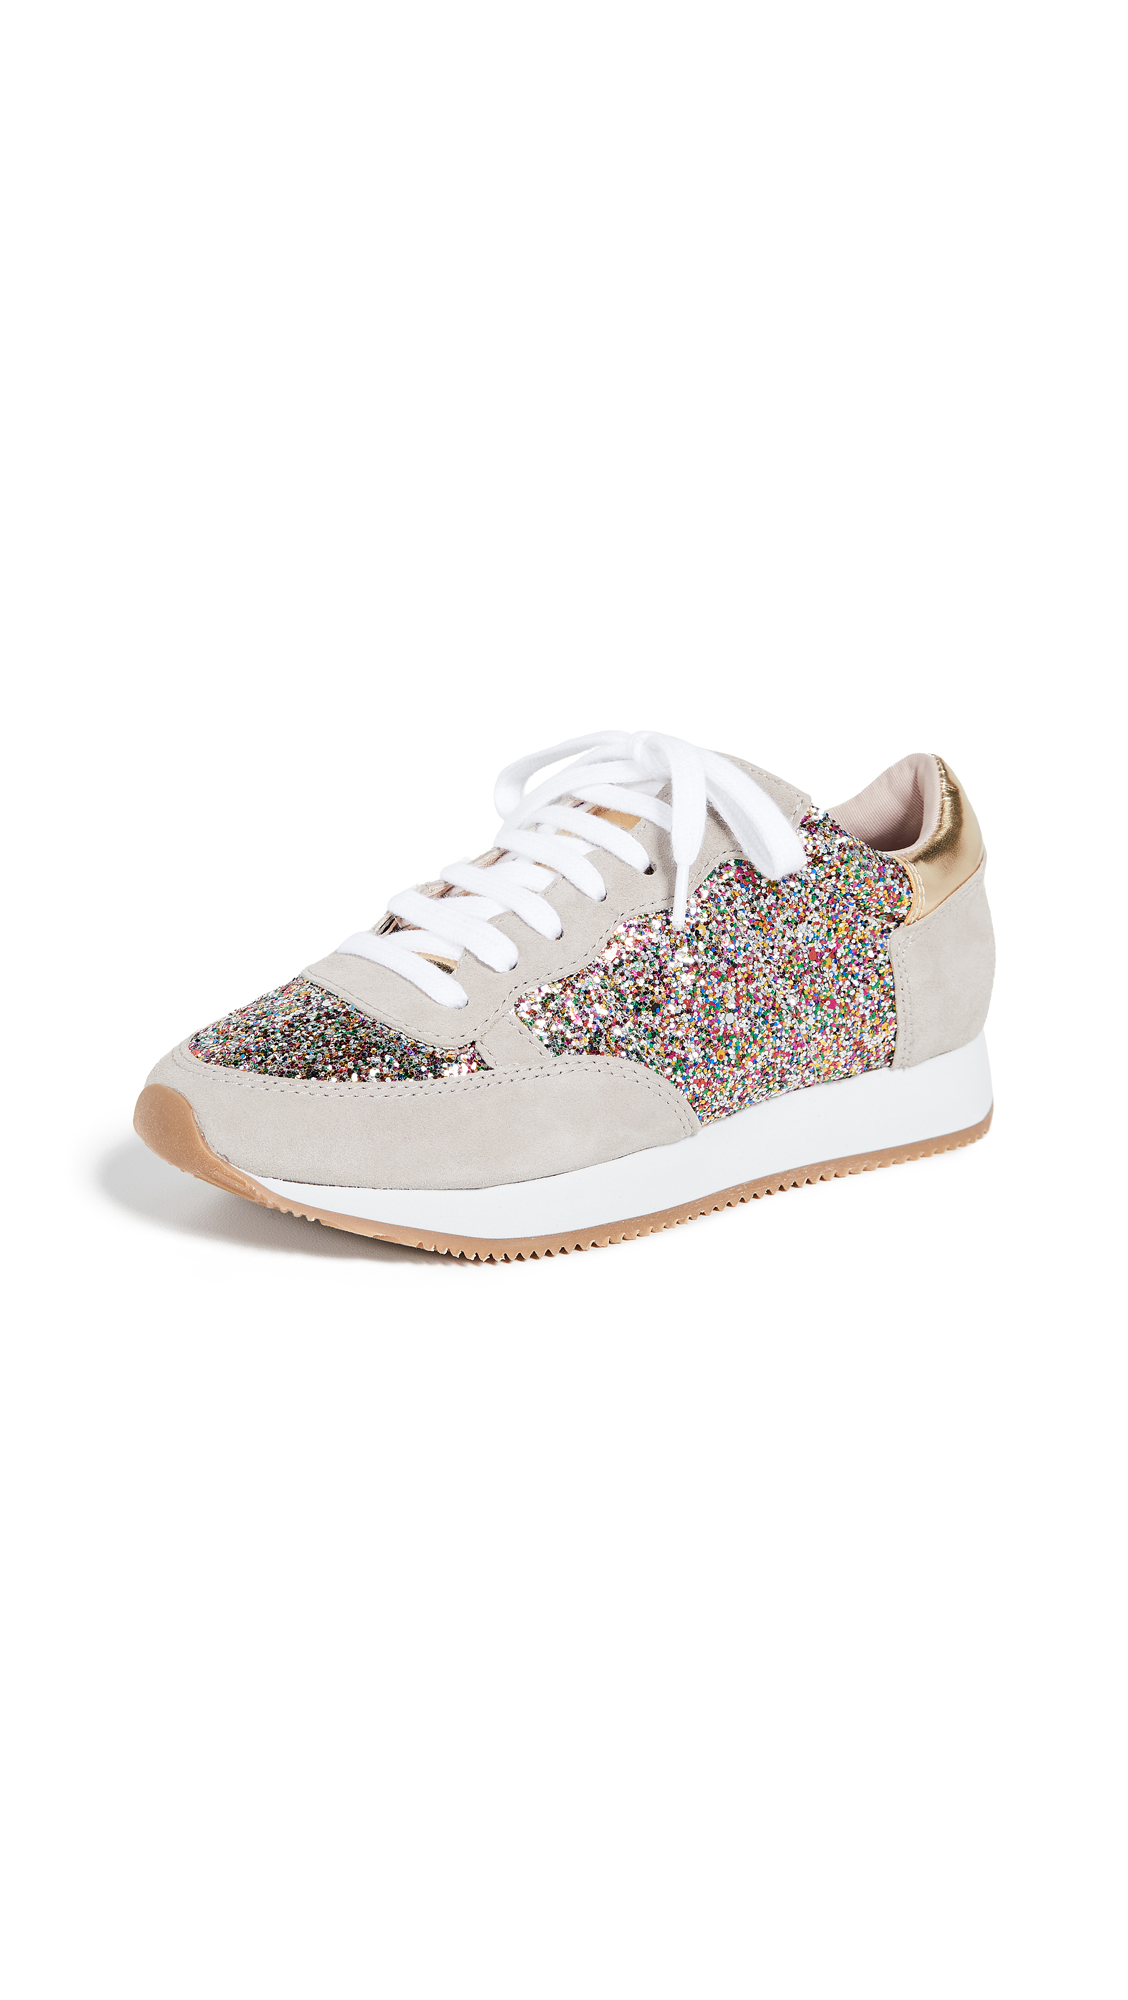 Kate Spade New York Felicia Lace Up Sneakers - Multi